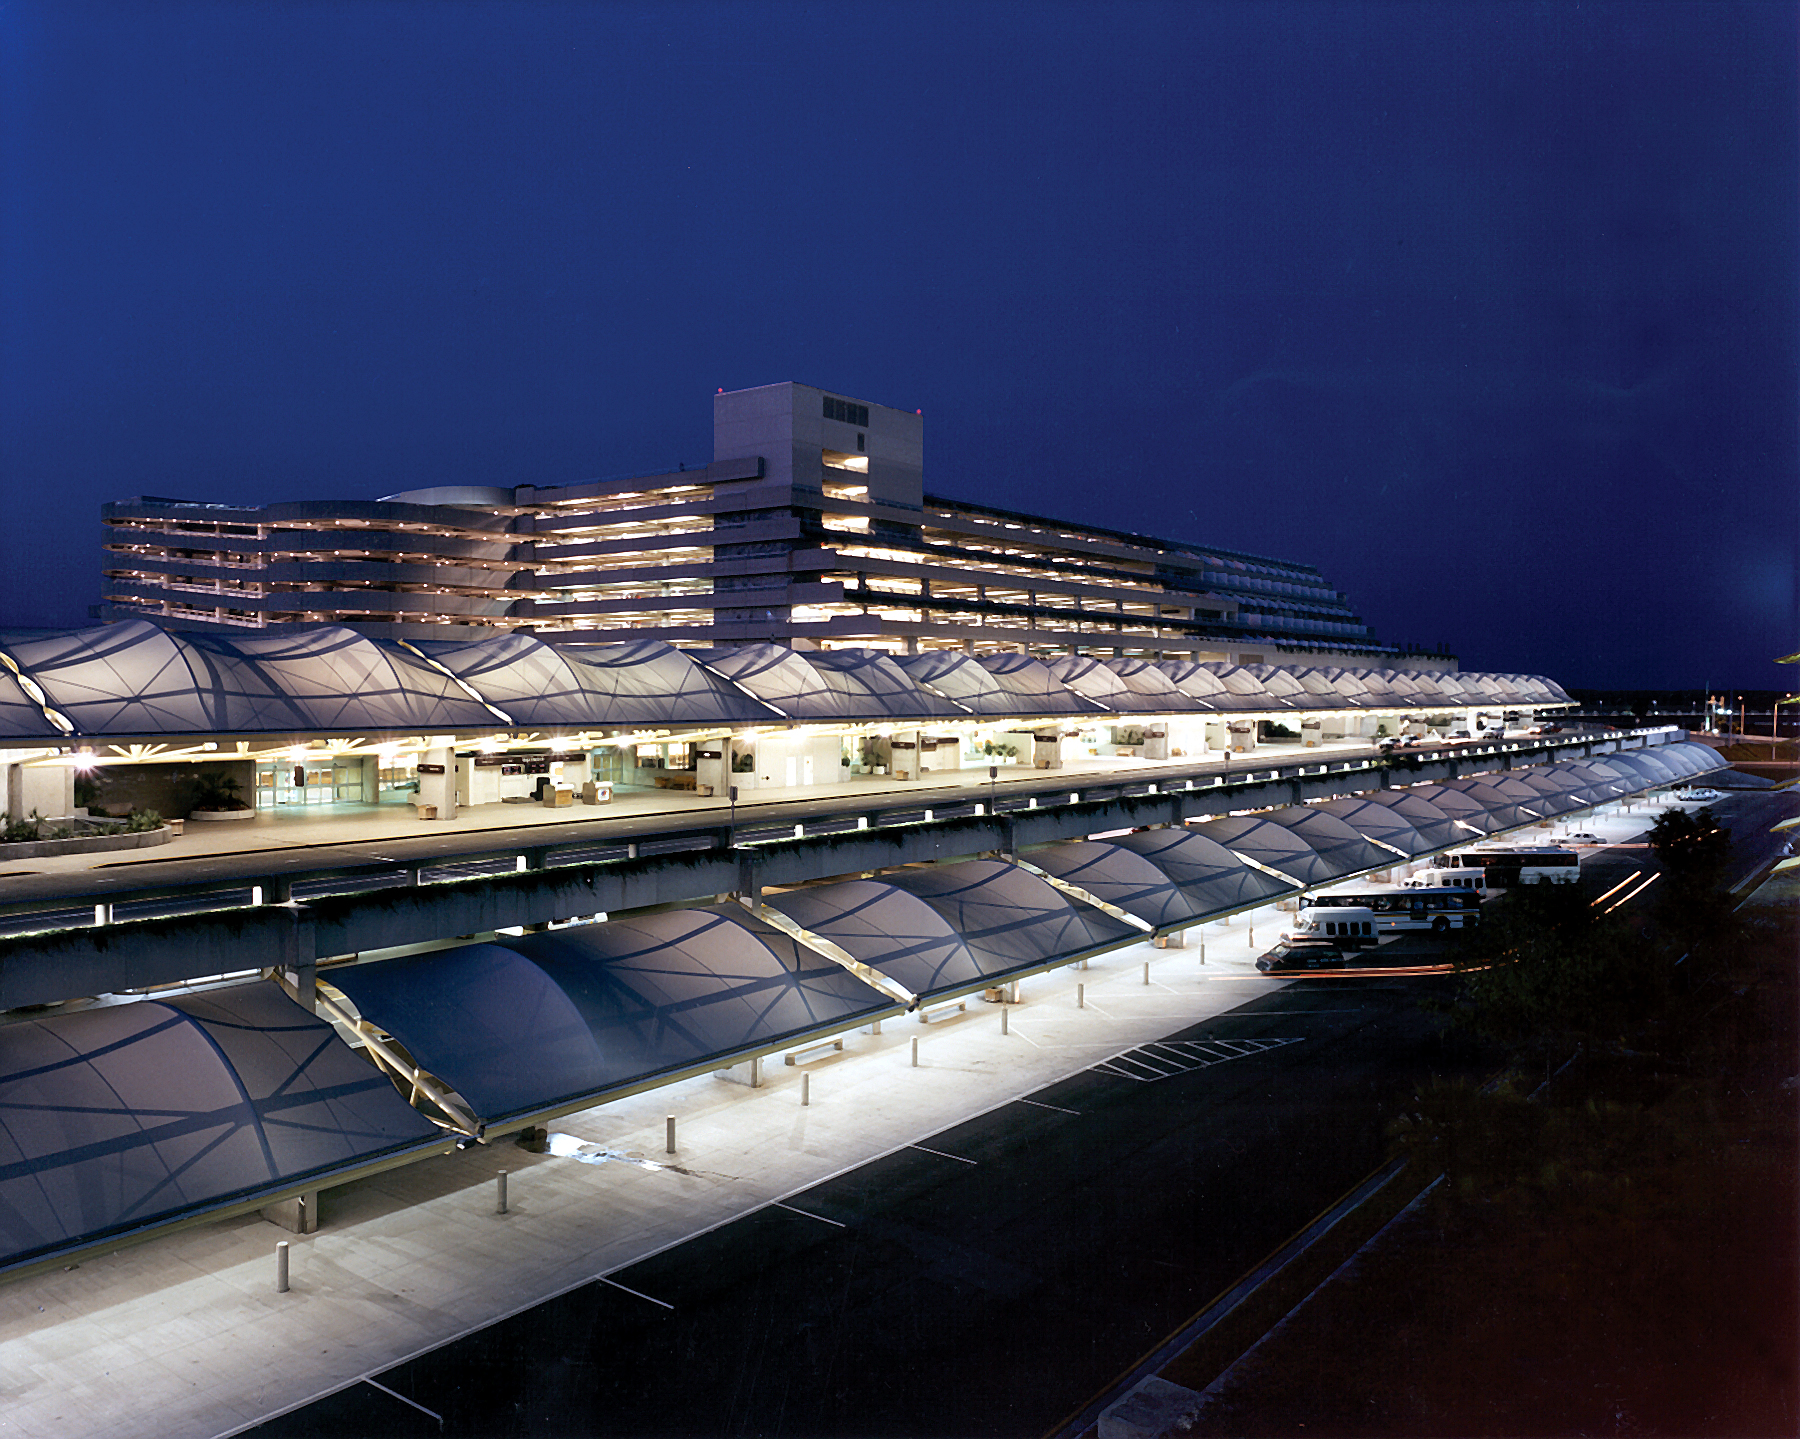 Terminal at Night